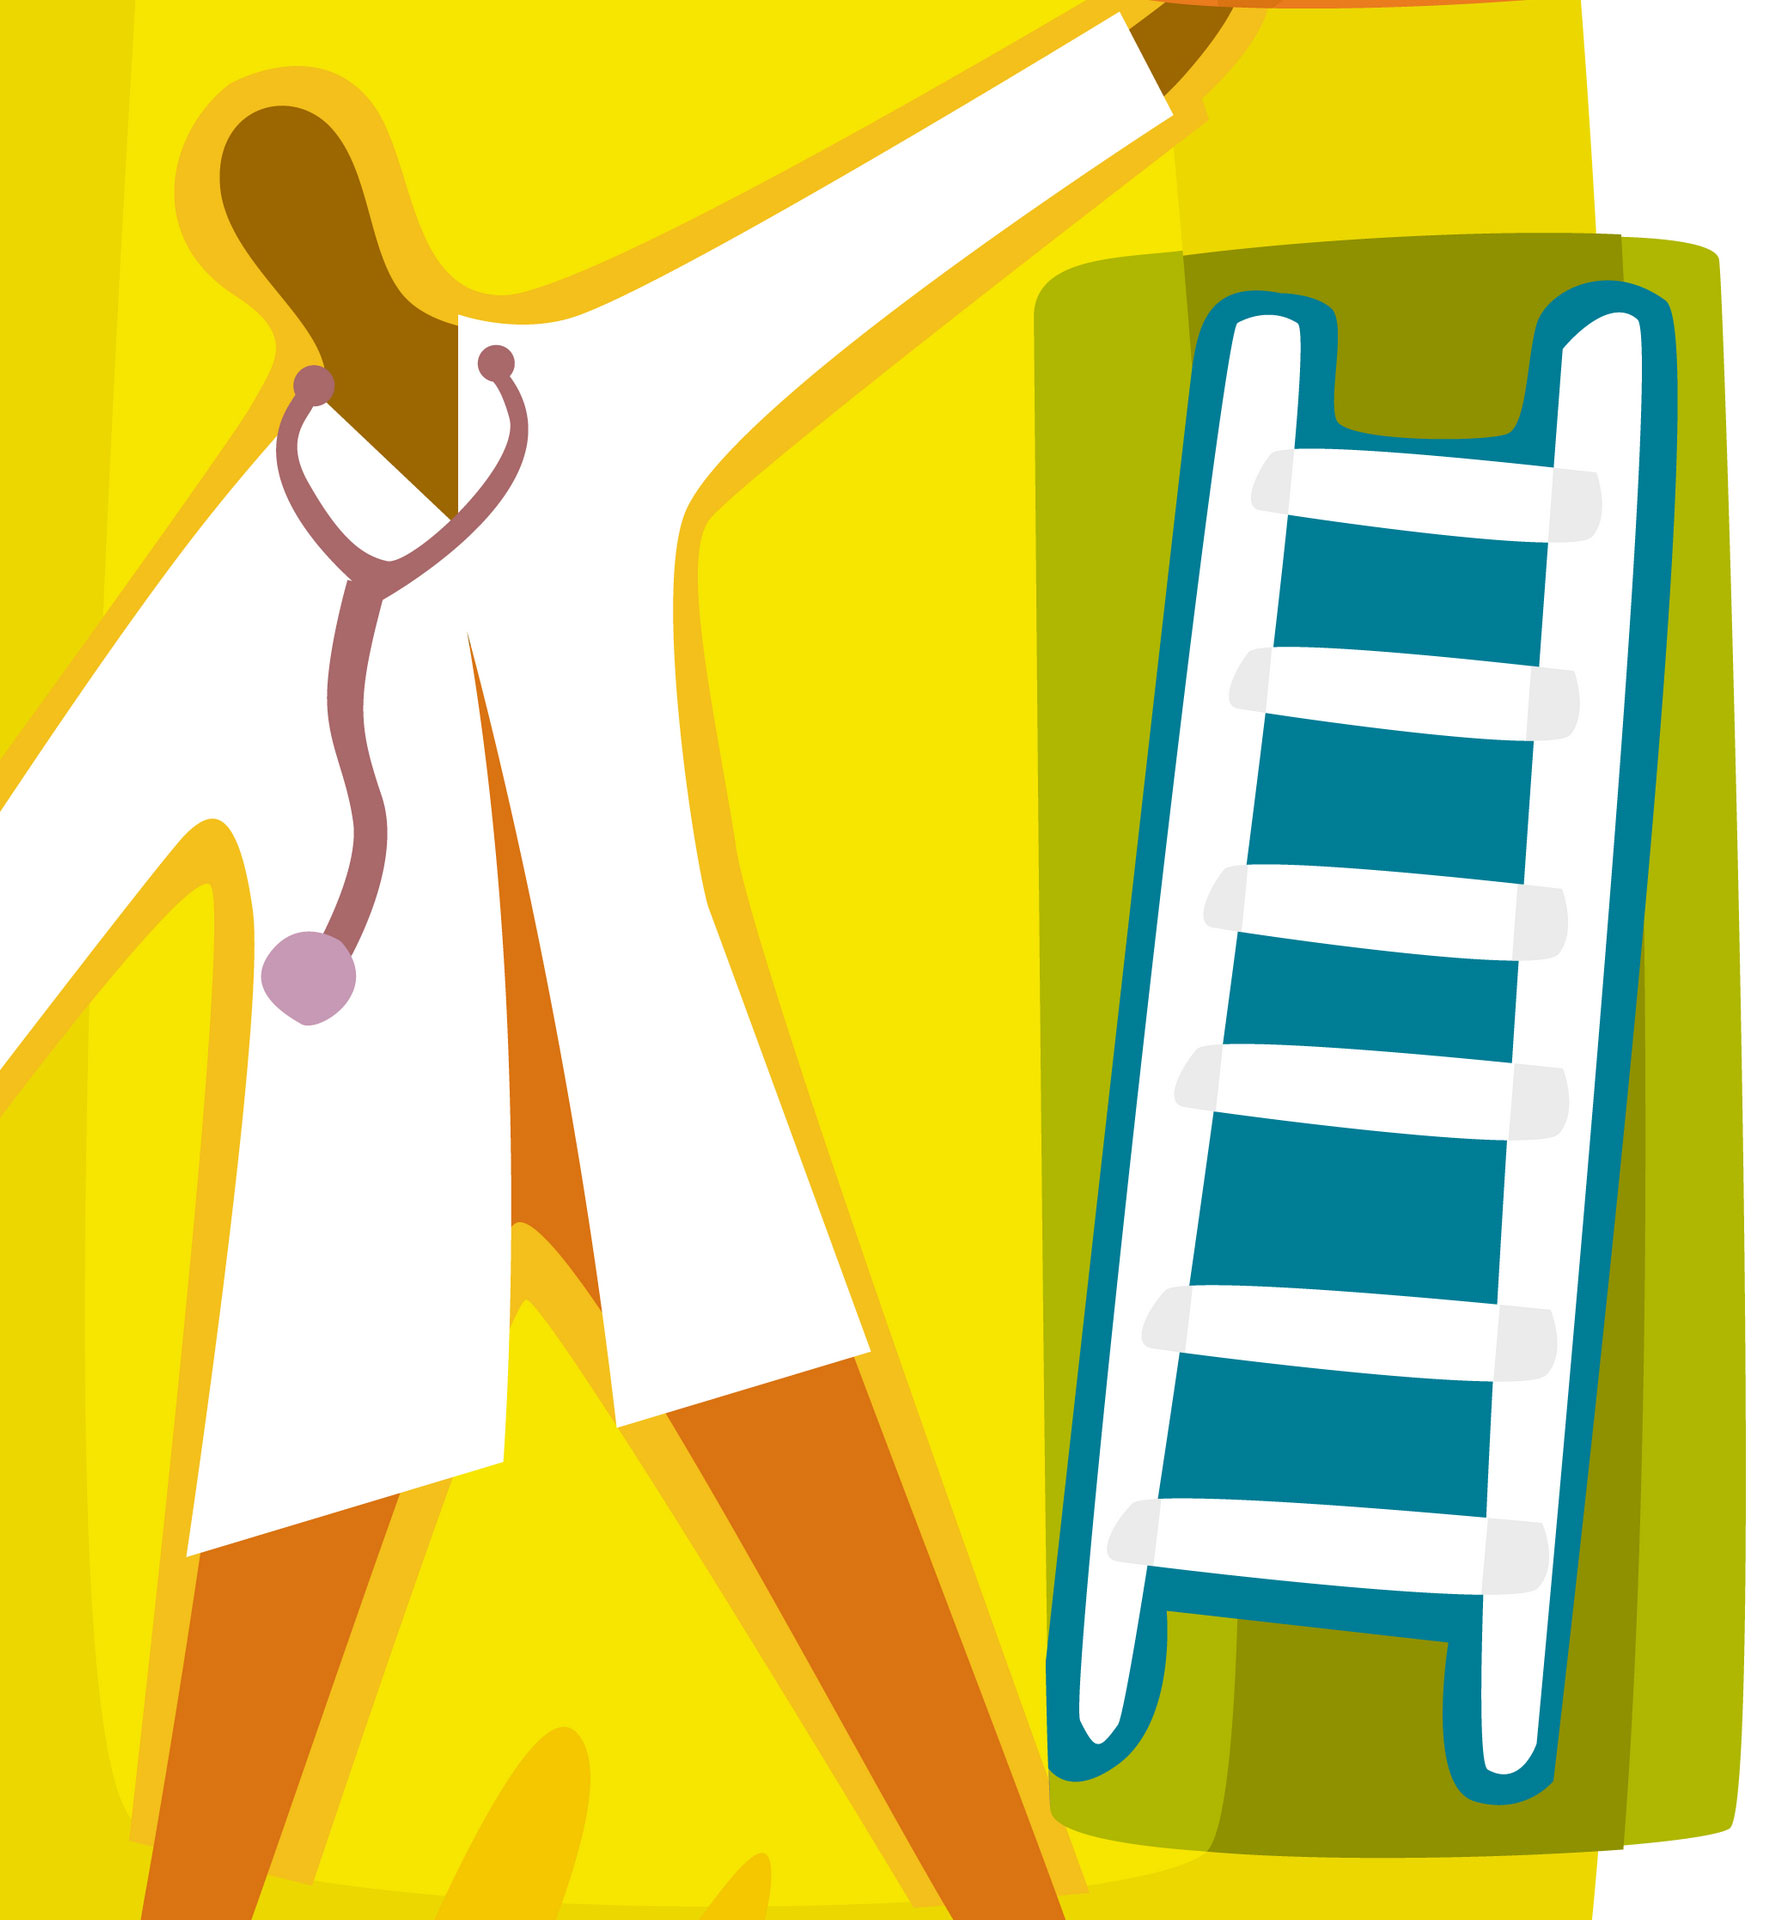 Advancing From Within The Value Of Clinical Ladders